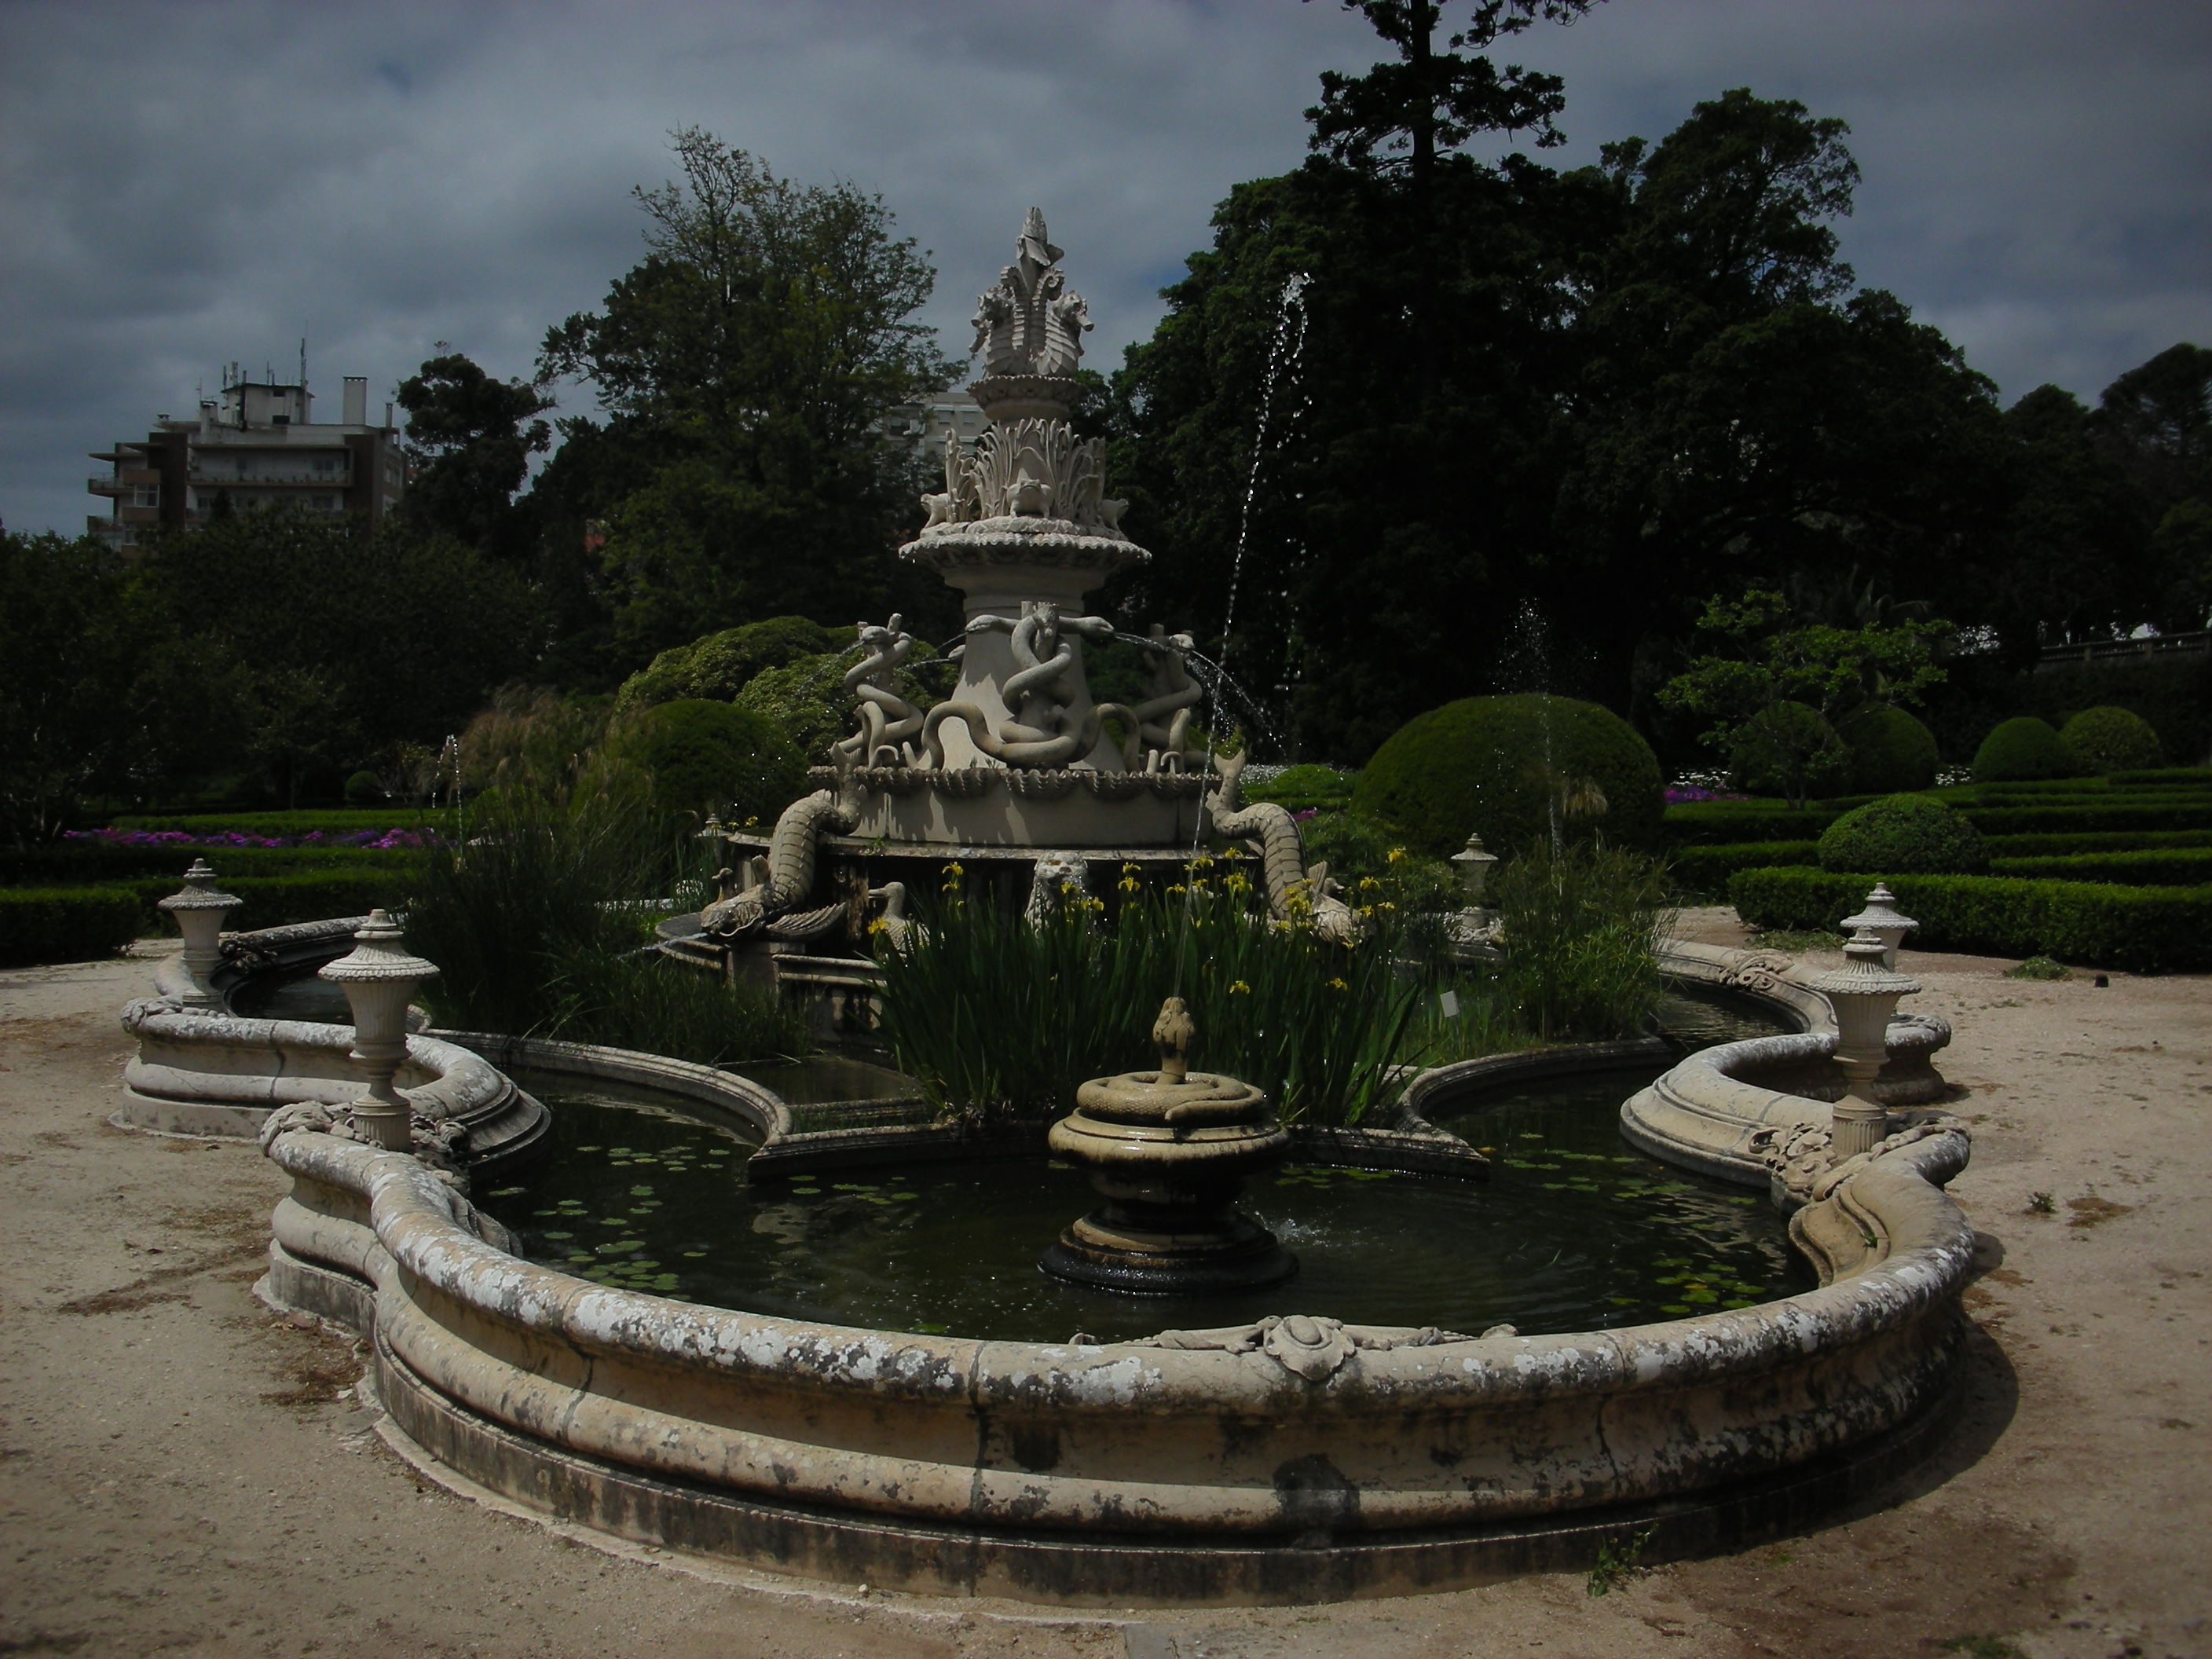 The Botanical Garden In Lisbon: This Is Not Just About Botany